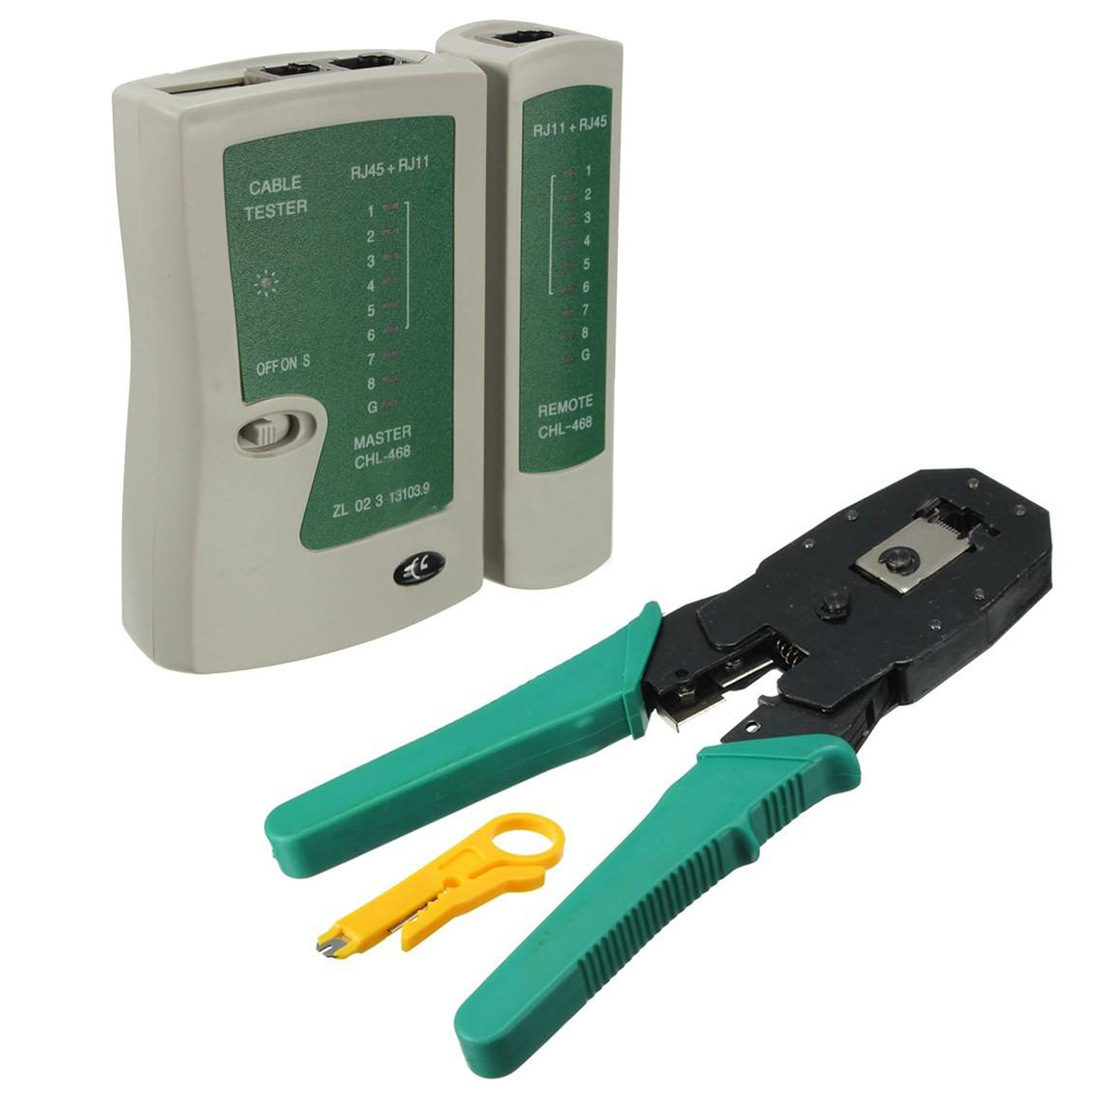 Professional Network Cable Tester Lan Rj45 Rj11 With Wire Cable Crimper Crimp PC Network Hand Tools Herramientas